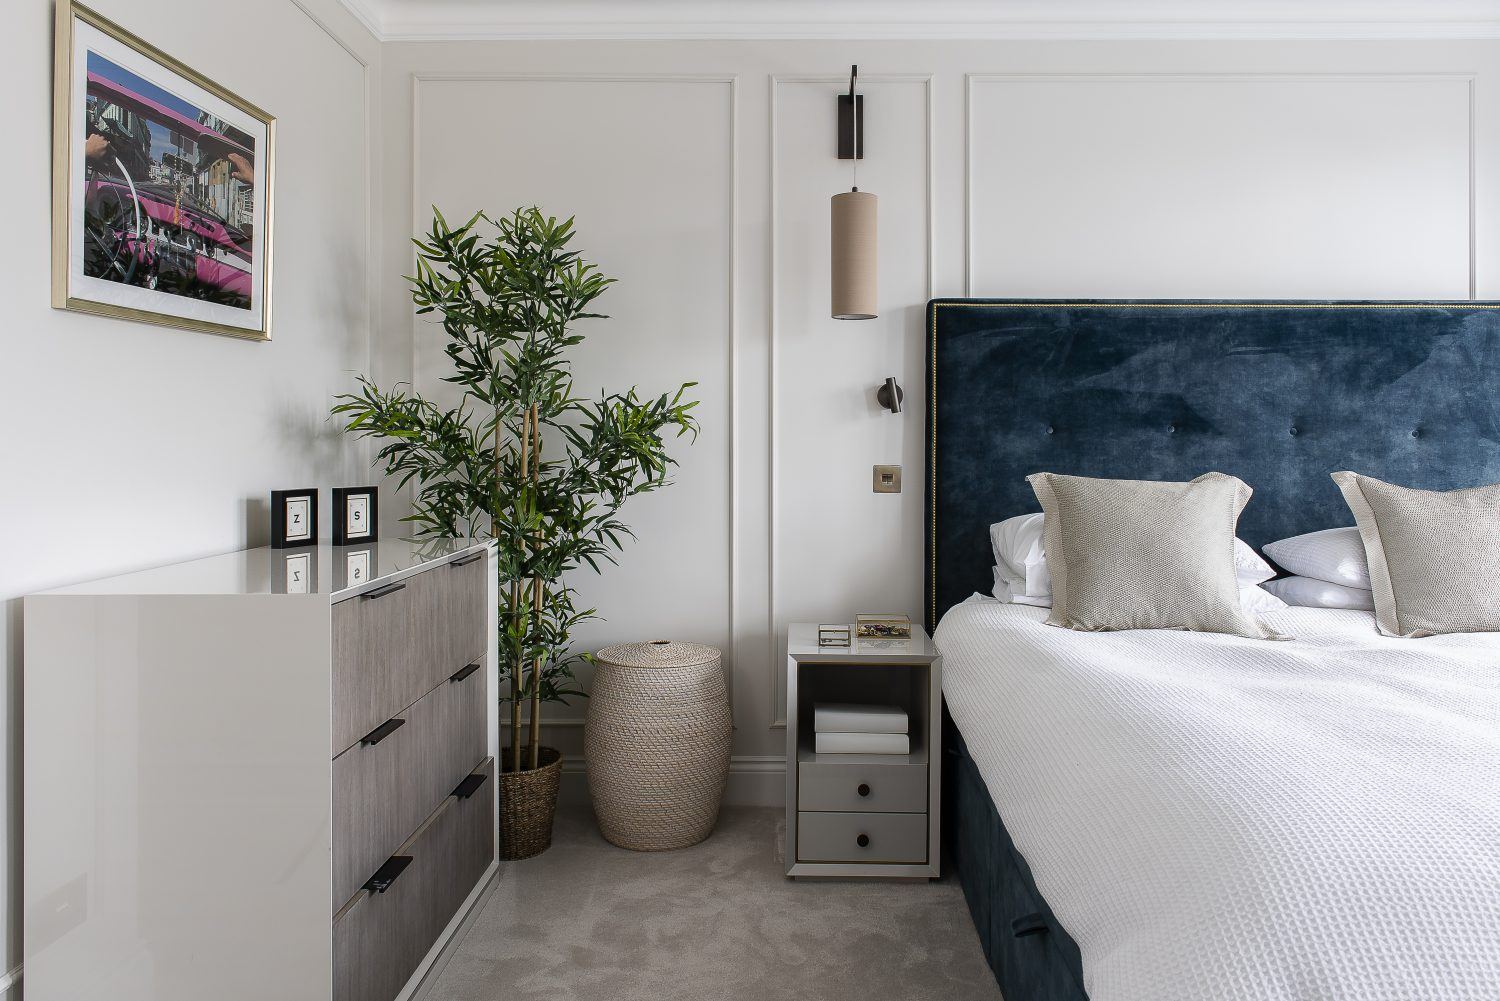 On her husband's request, Zoe created a master bedroom with a true hotel feel with beaded panelling, a velvet bed – from Sweetpea & Willow – and luxurious bedside tables from Robert Langford, lined in velvet. The lights are by Astro Lighting